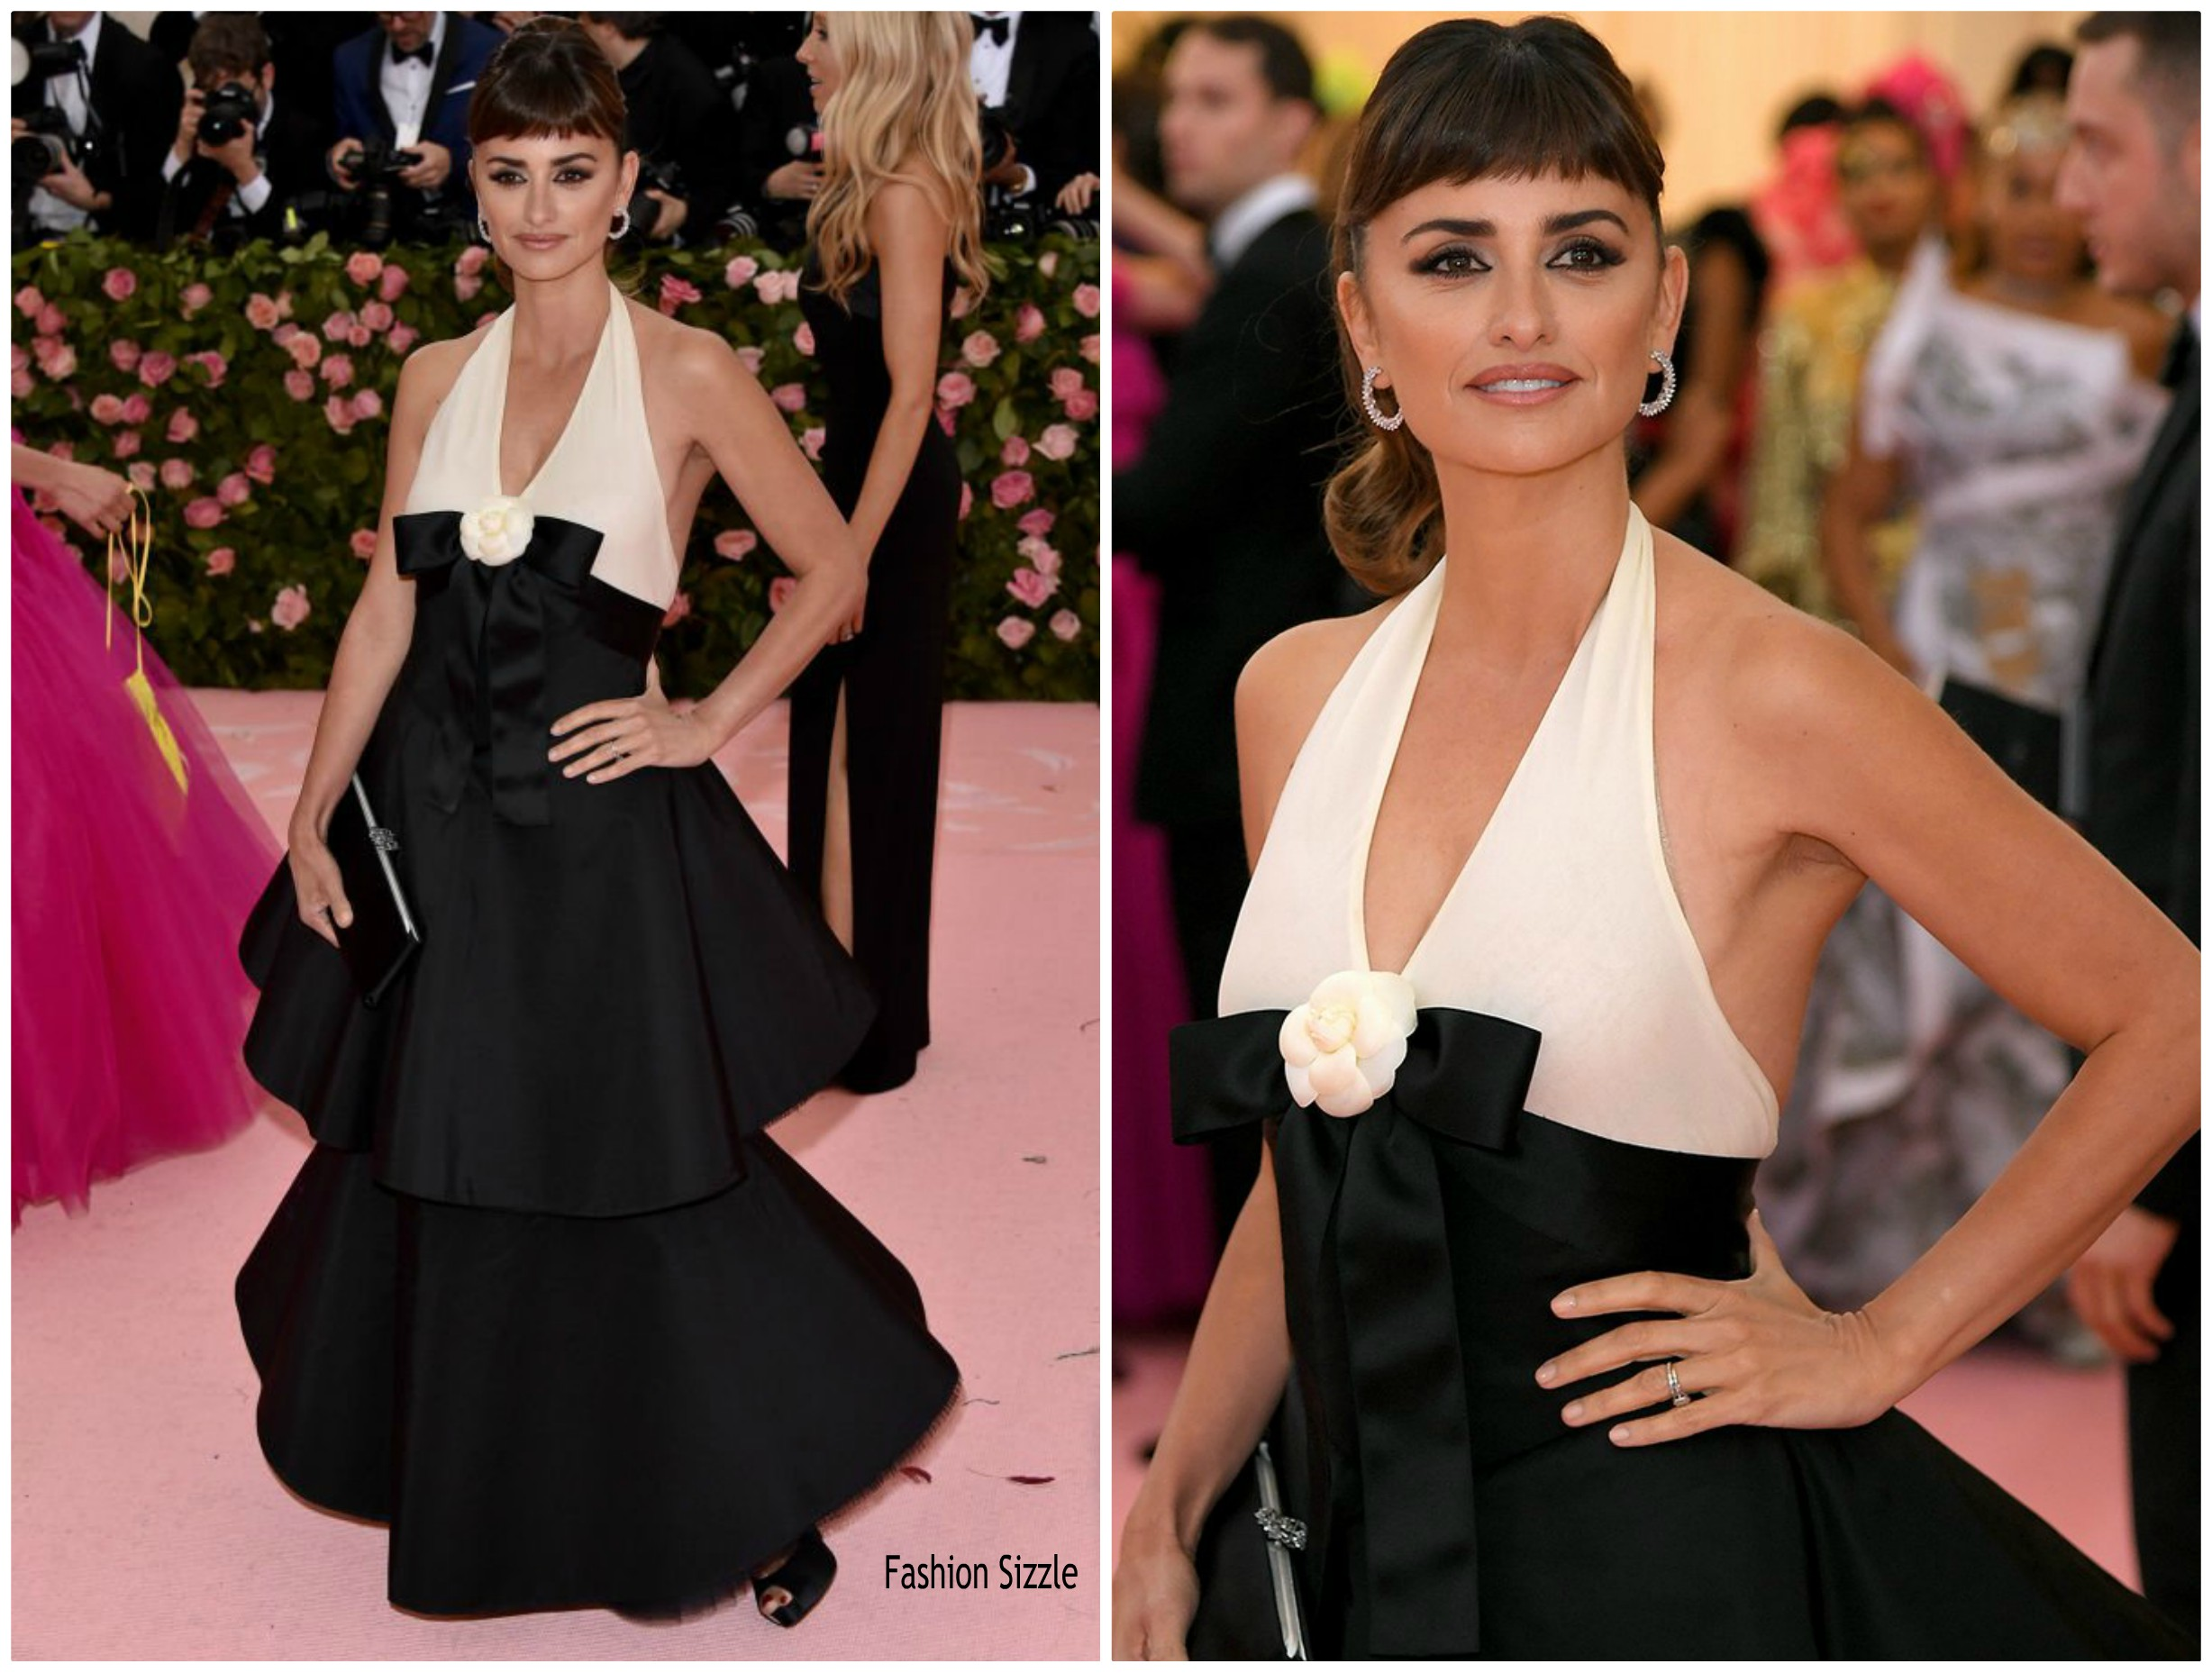 penelope-cruz-in-chanel-couture-2019-met-gala